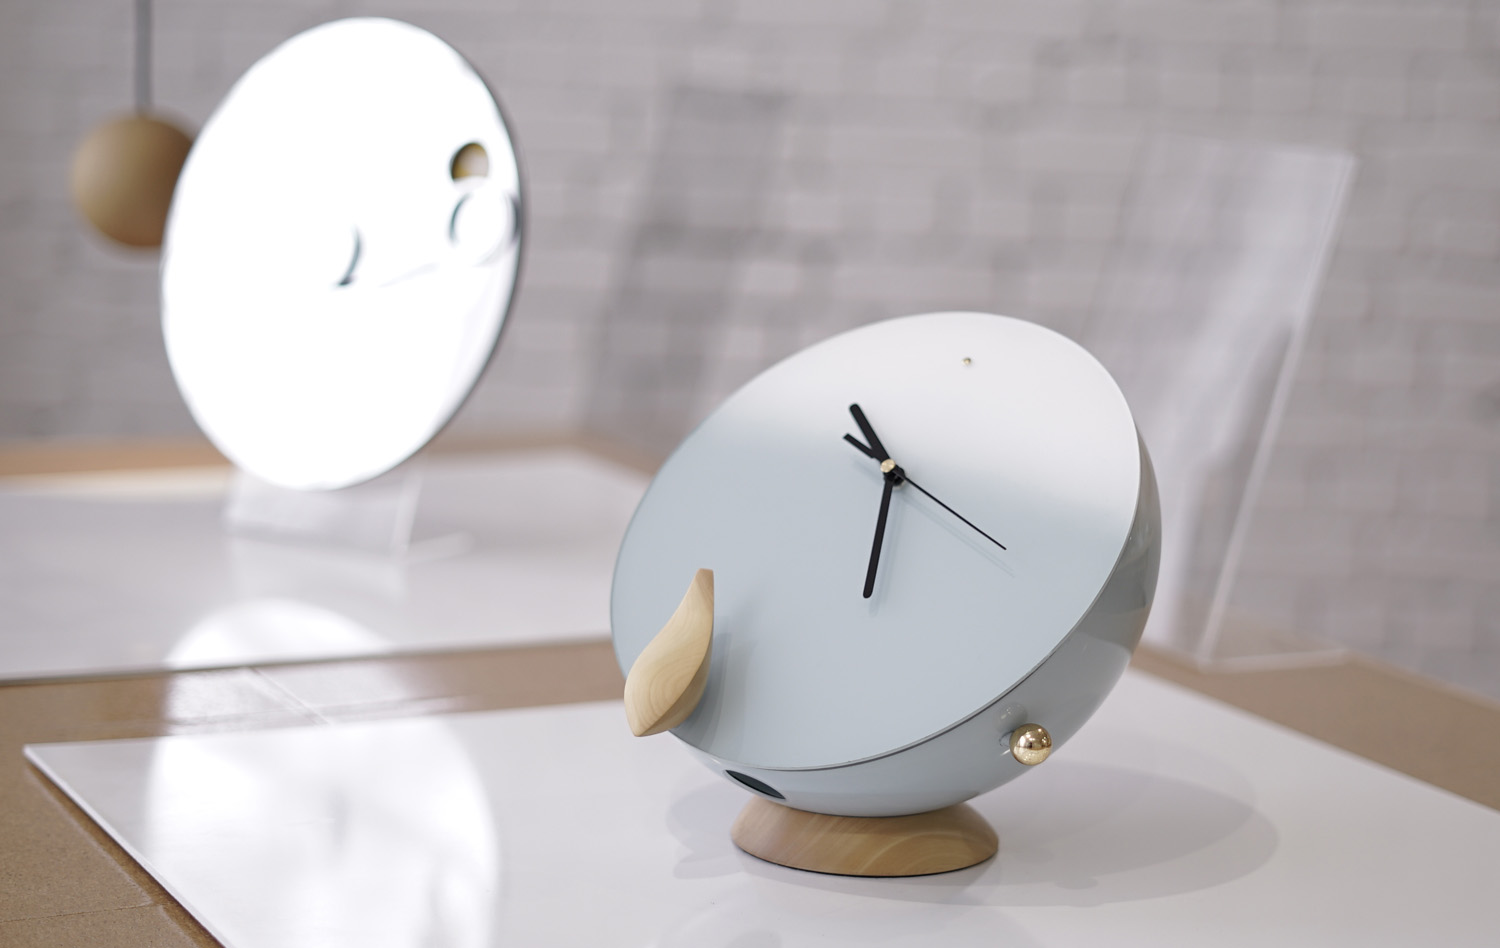 Nest in the west - Is there too many eggs in the nest?  Contemporary Cuckoo clock + candy dispenser